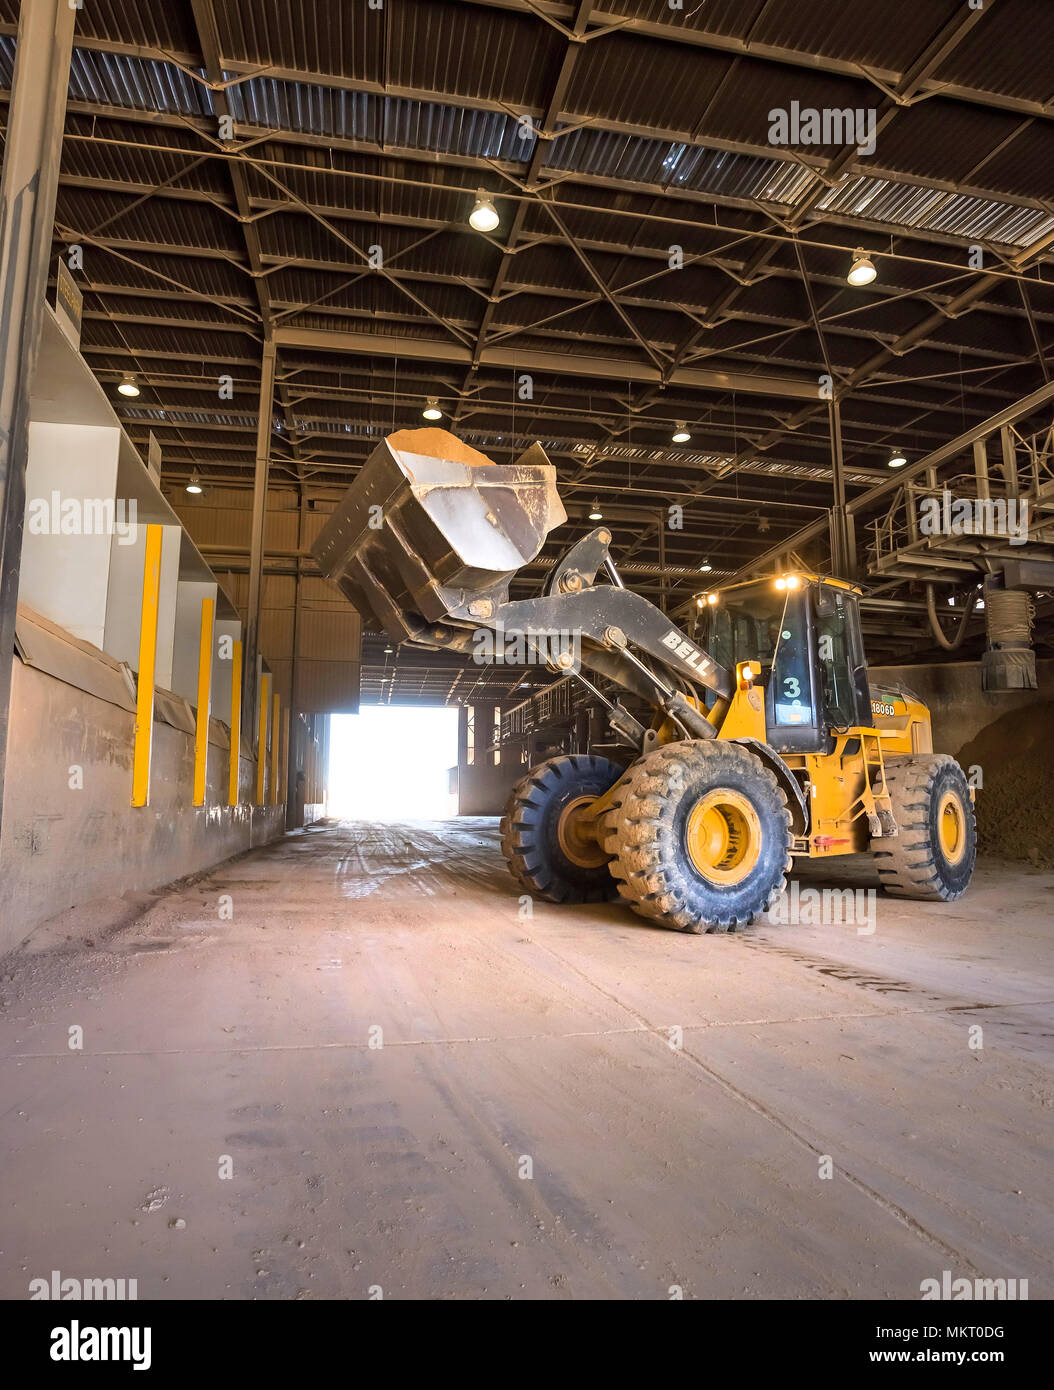 Cape Town, South Africa, June 29 - 2018: Digger truck loading clay ...